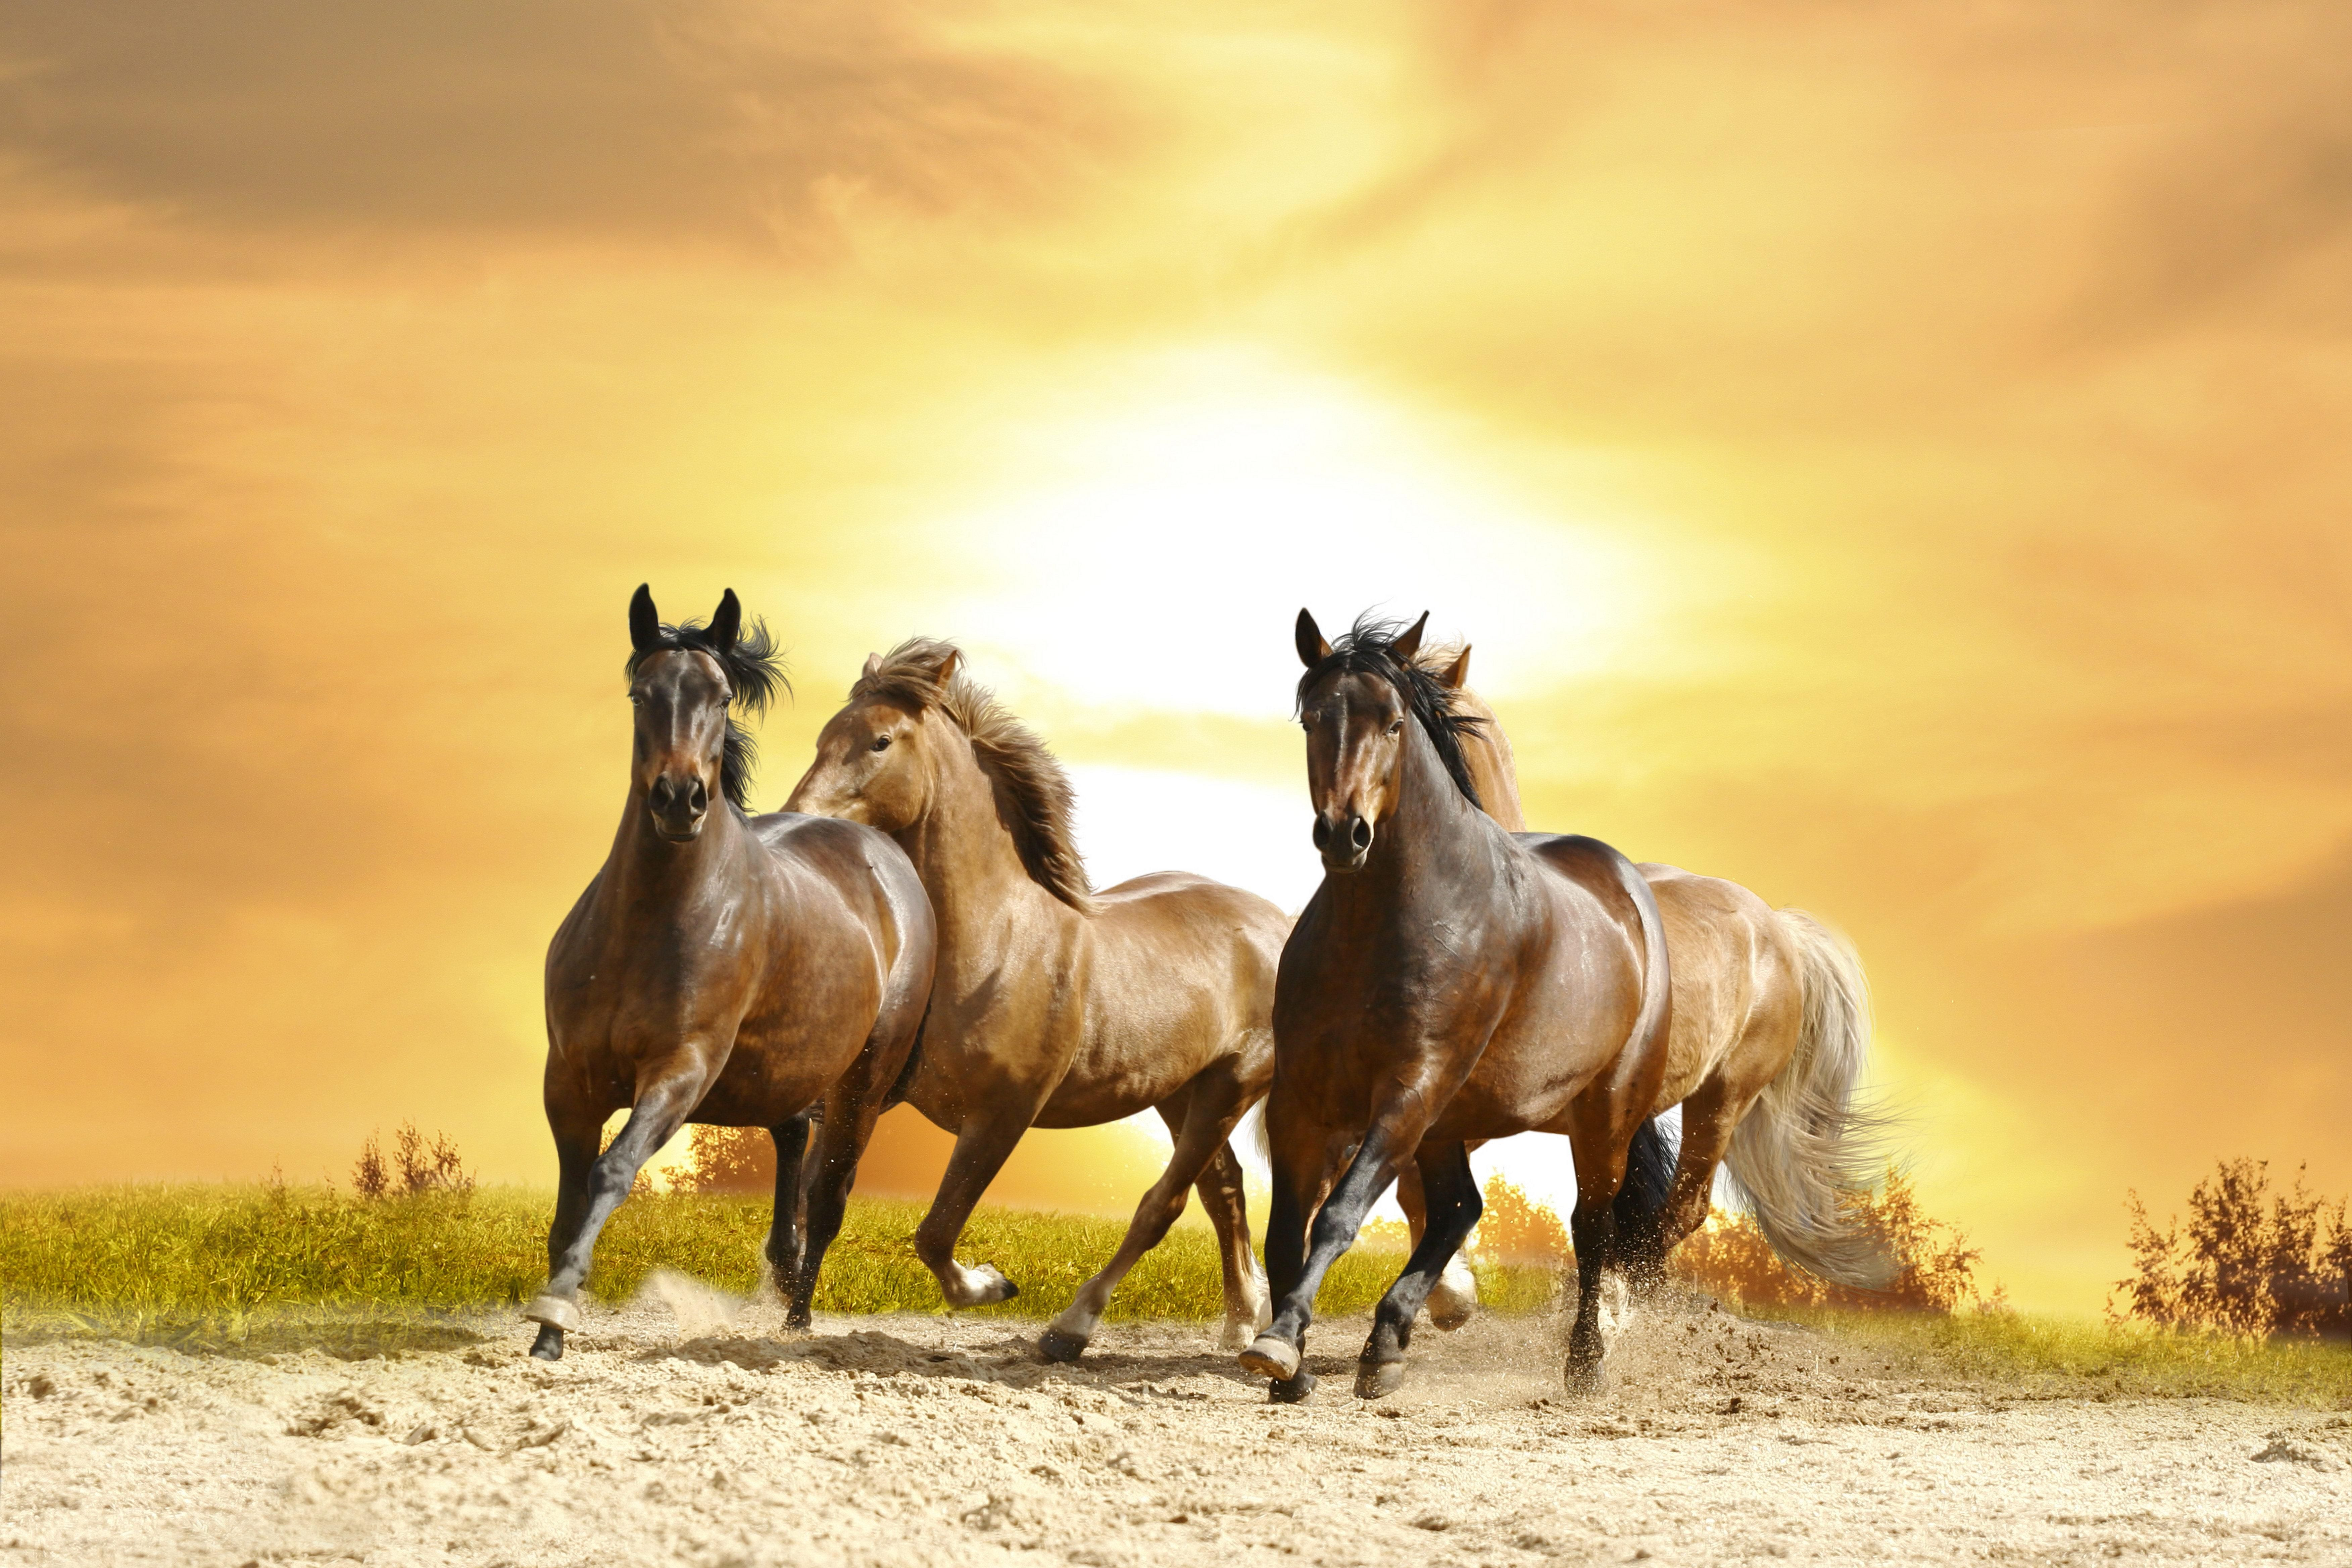 Beautiful Wallpaper Horse National Geographic - 3b4c01414125073c9ee9b8b21238232b  Picture_206632.jpg